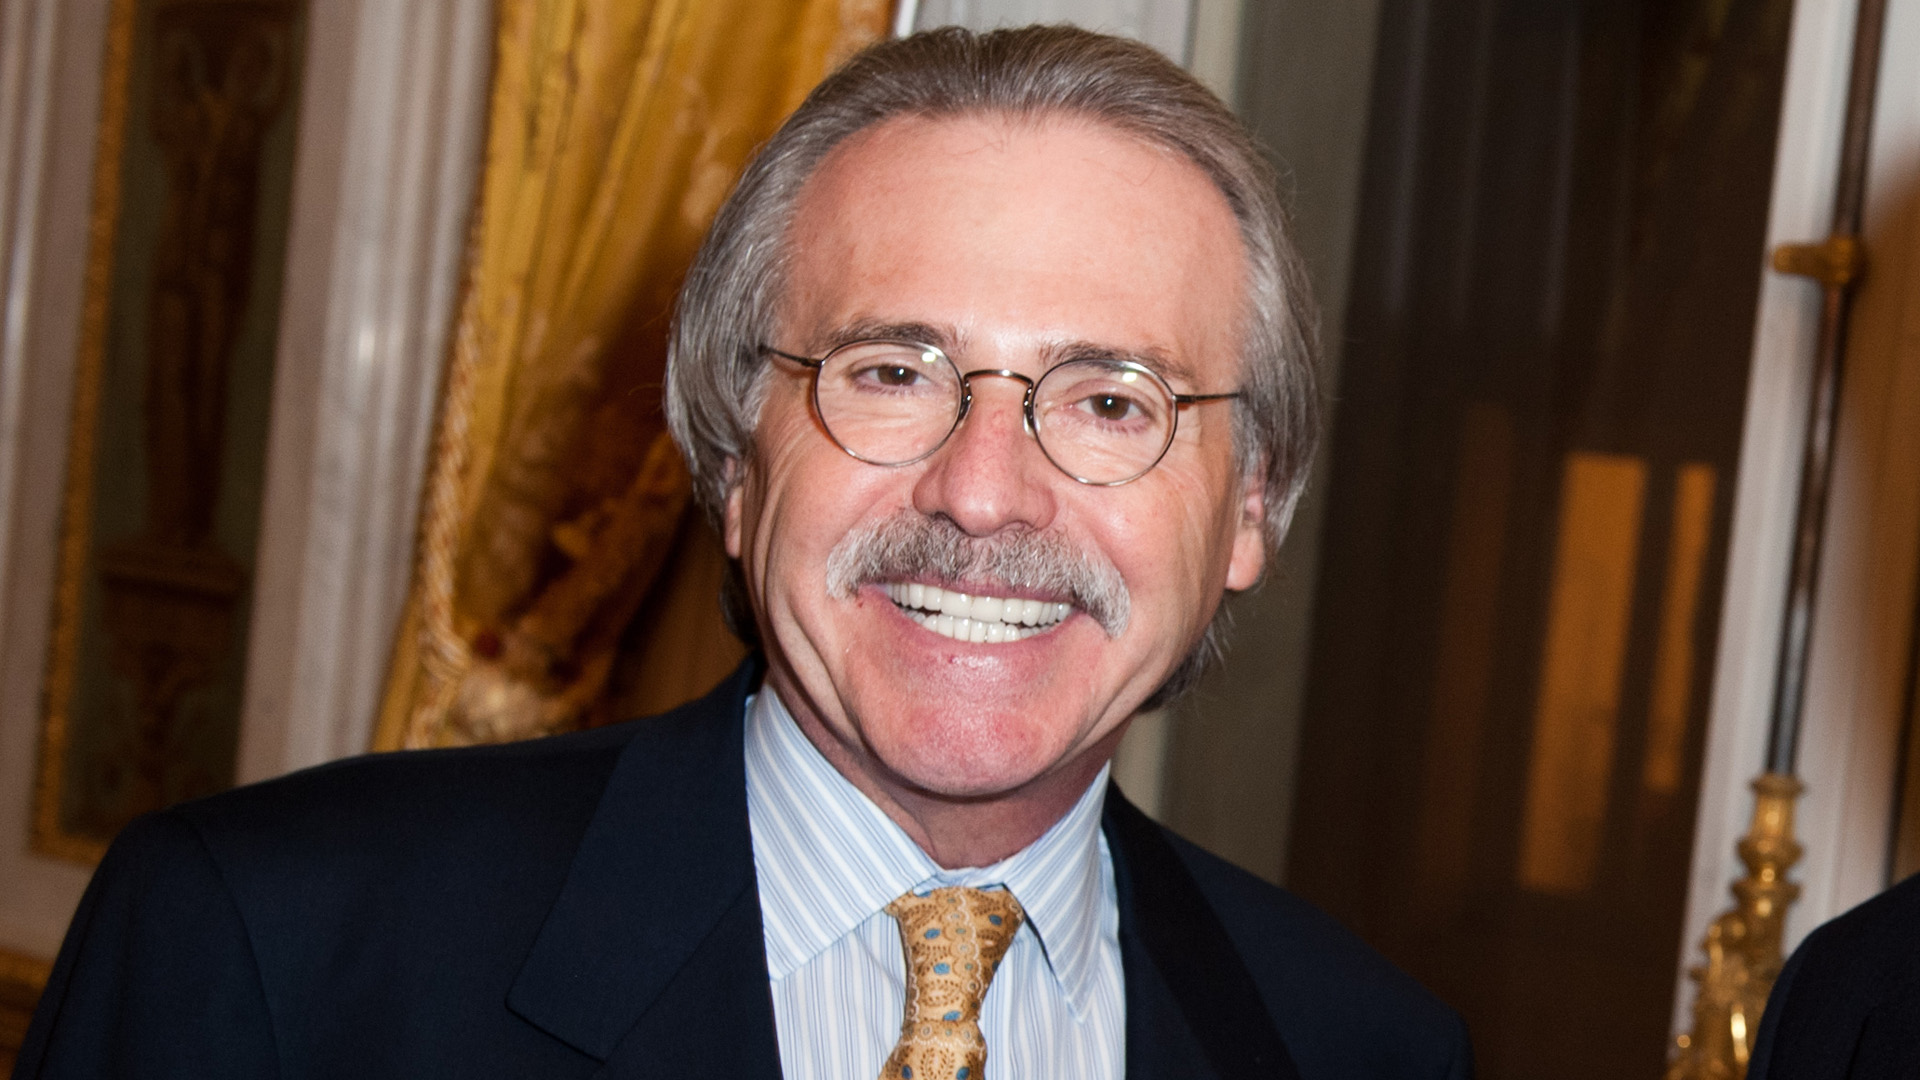 David Pecker, chairman and CEO of American Media, is seen attending the 'Shape France' Magazine cocktail launch at Hotel Talleyrand on January 19, 2012 in Paris, France. (Credit: Francois Durand/Getty Images)